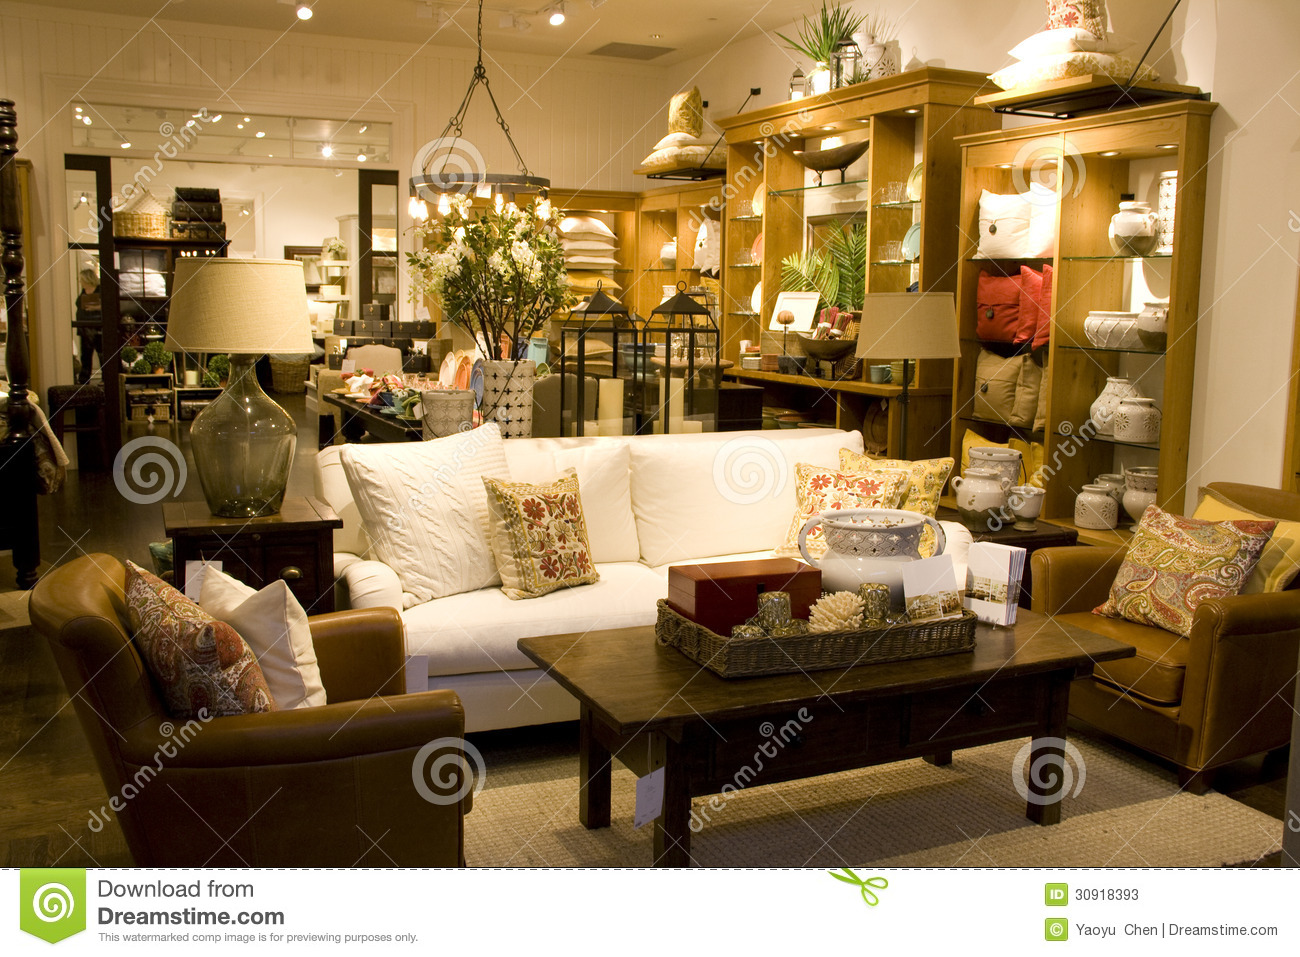 designer furniture and home decor in store